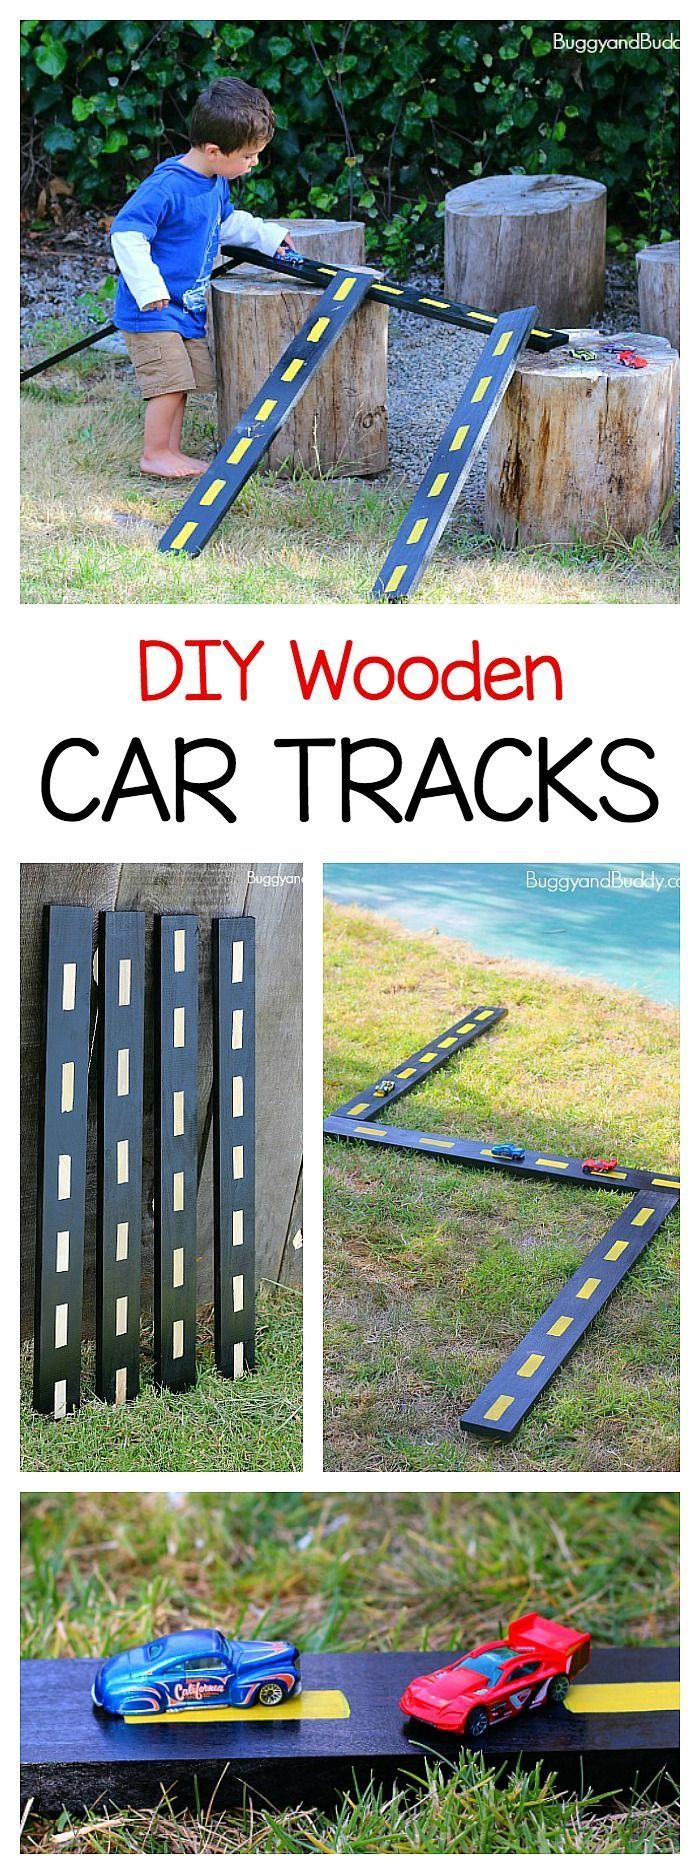 DIY Wooden Roads and Ramps for Toy Cars: Easy homemade car tracks perfect for outdoor and inside play- especially fun for Hot Wheels fans! Great for school or home. ~ http://BuggyandBuddy.com